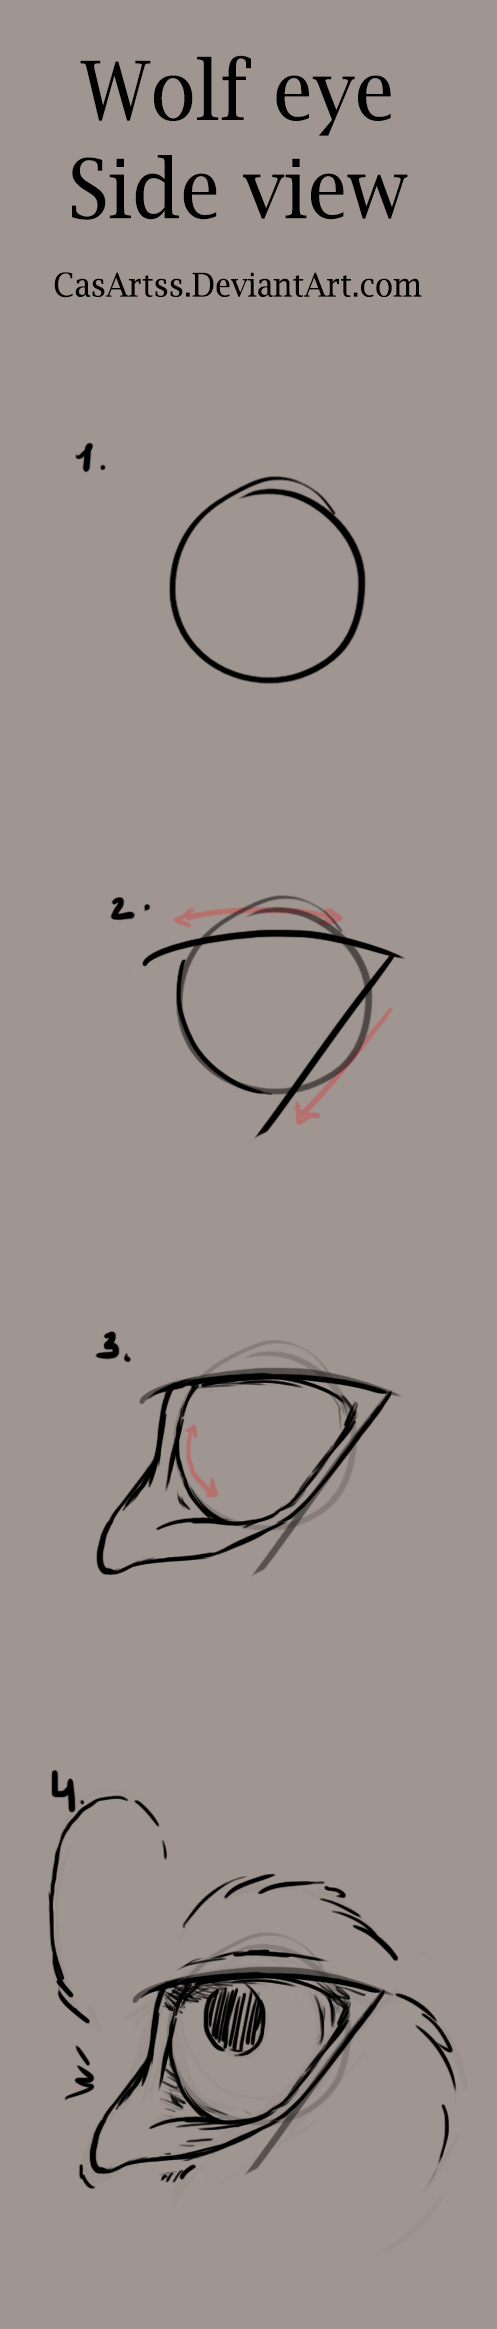 497x2329 Wolf Eye Tutorial (Side View) By Casartss